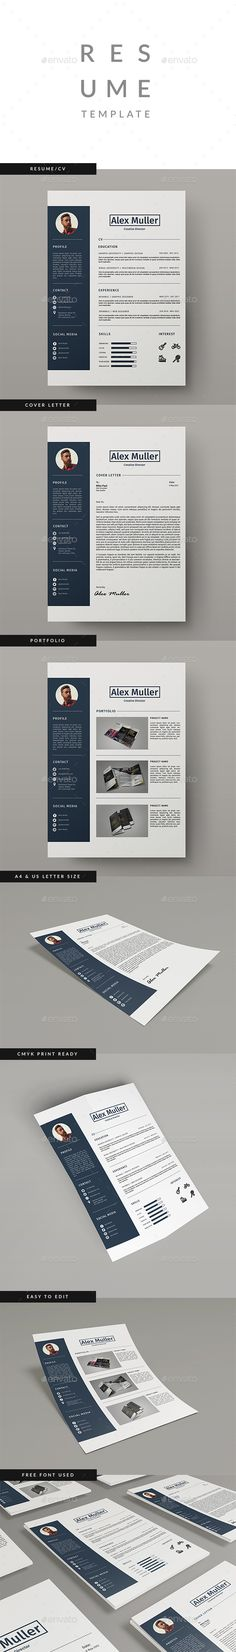 Resume Template InDesign INDD                                                                                                                                                                                 More